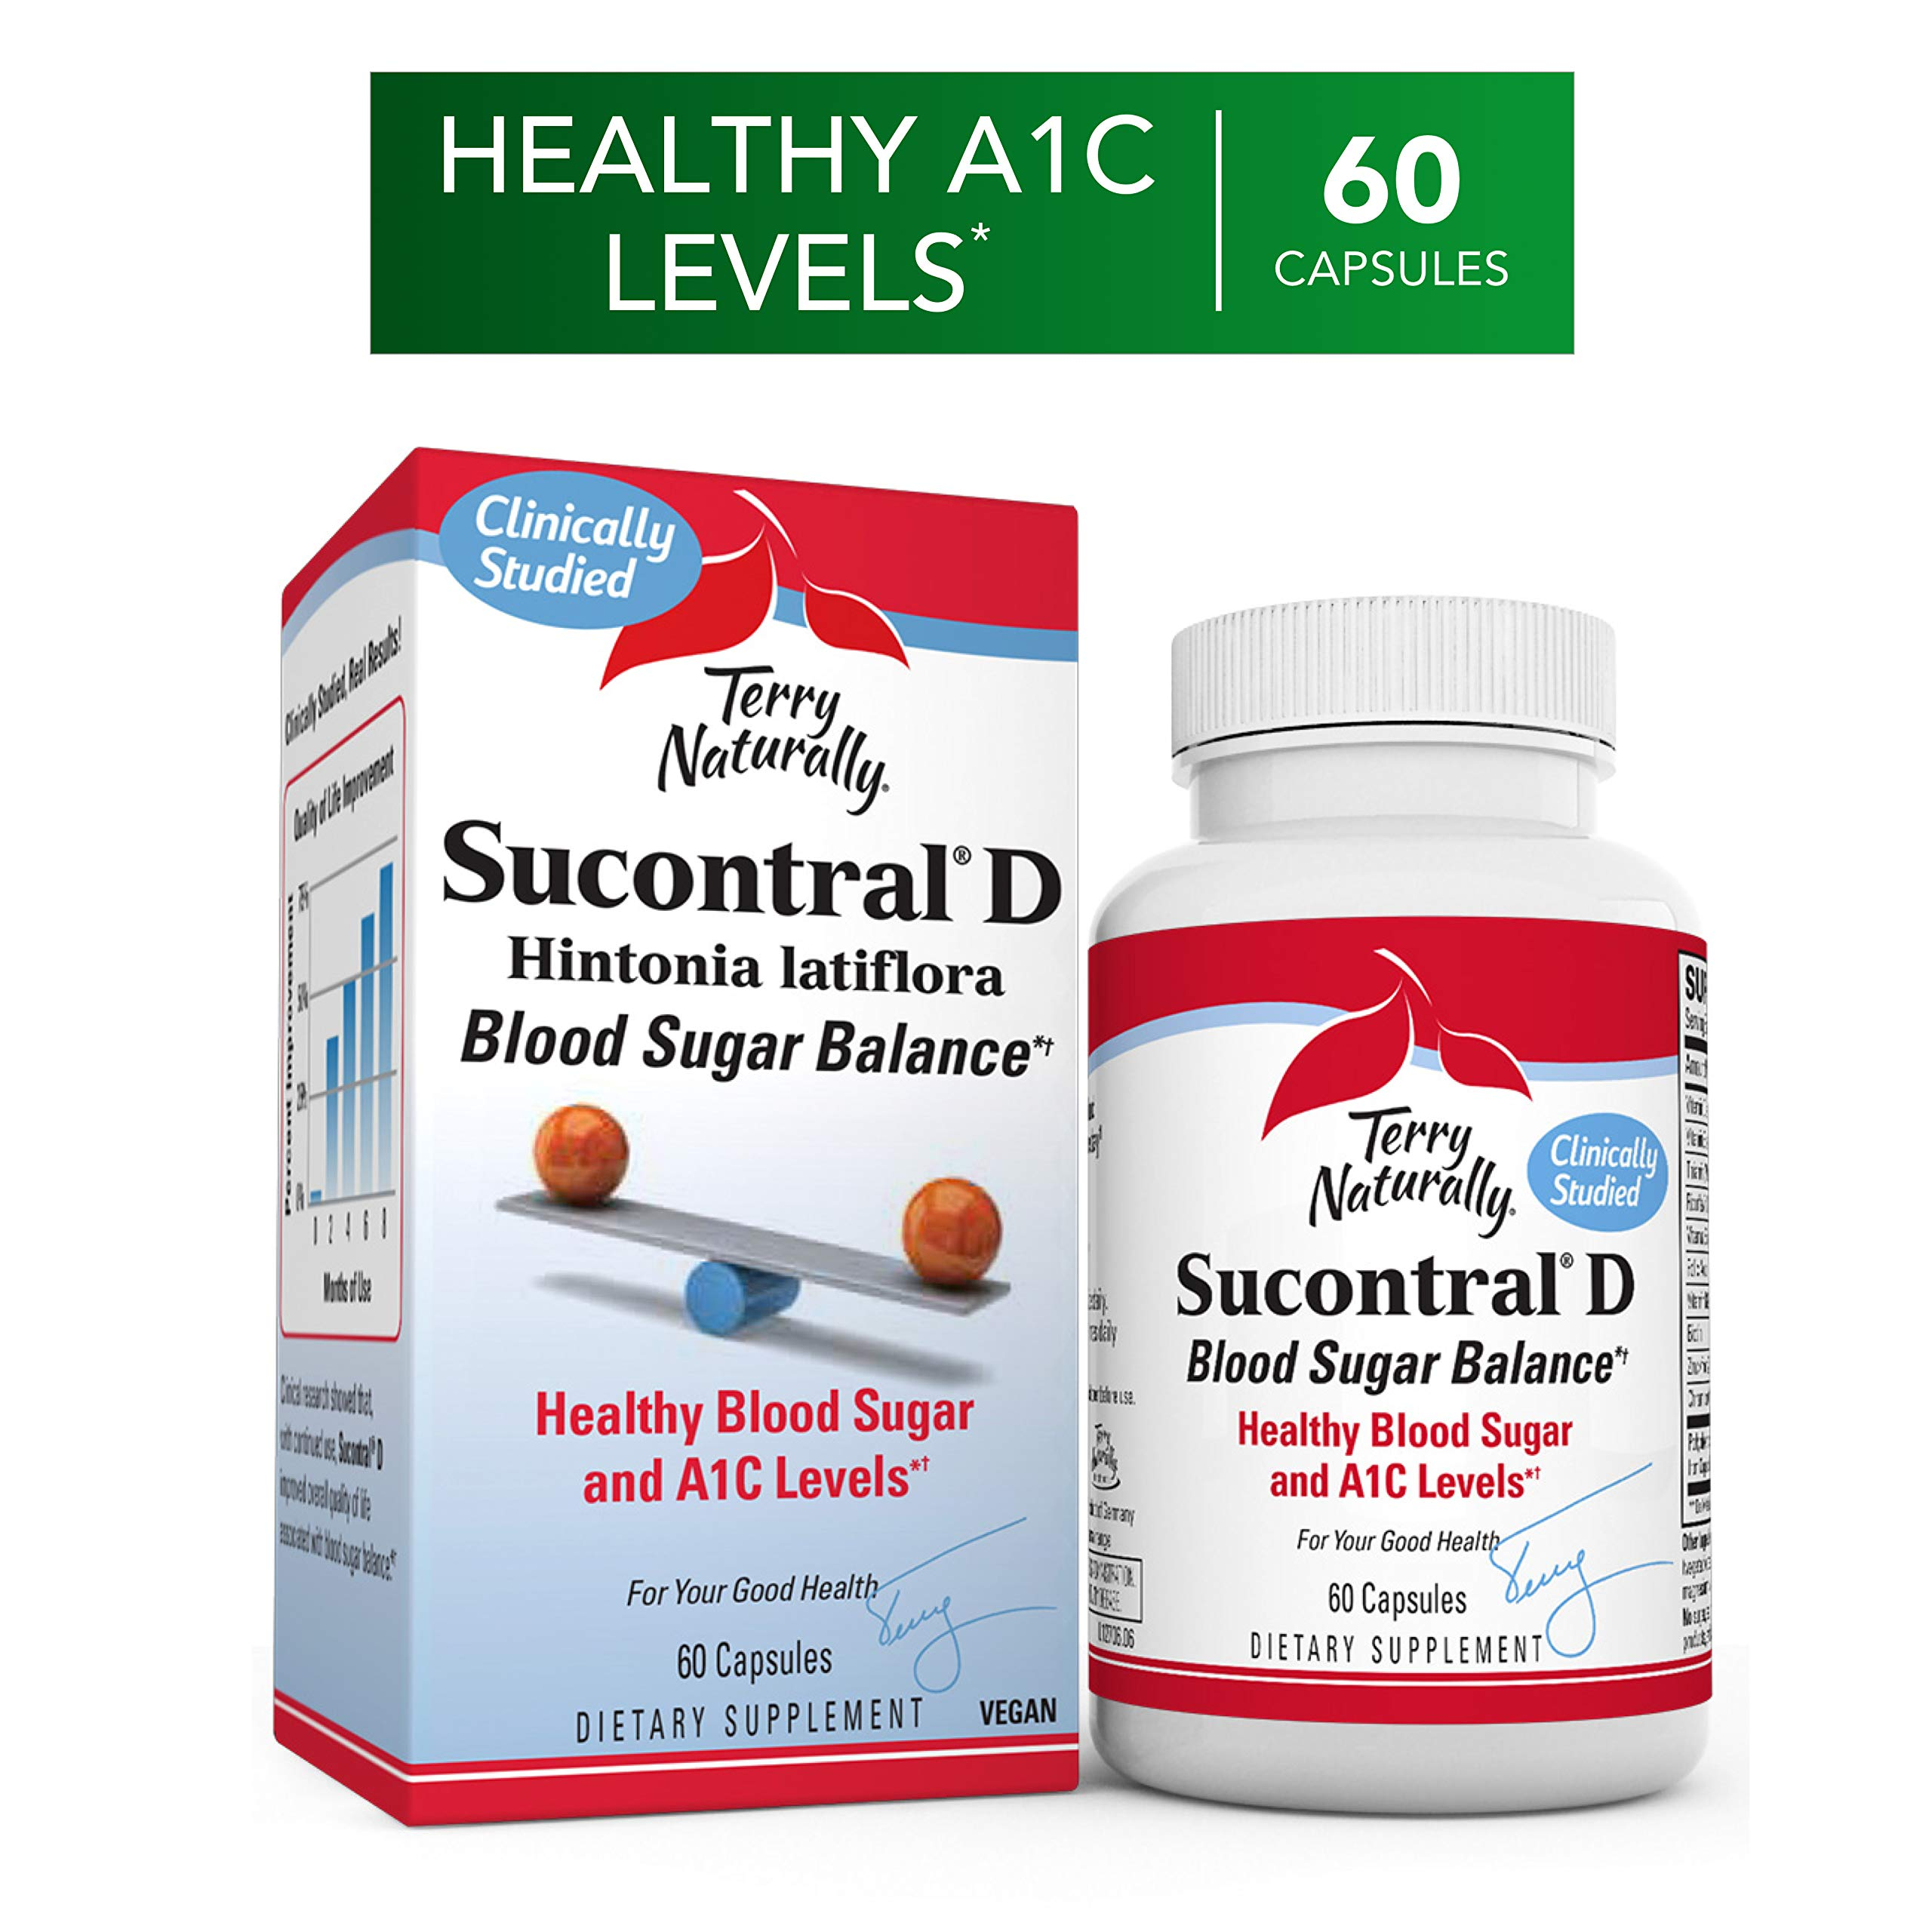 Terry Naturally Sucontral D - 20 mg Hintonia Latiflora, 60 Capsules - Supports Blood Sugar Balance, Carbohydrate Metabolism & Healthy Insulin Function - Non-GMO, Gluten-Free - 60 Servings by Terry Naturally